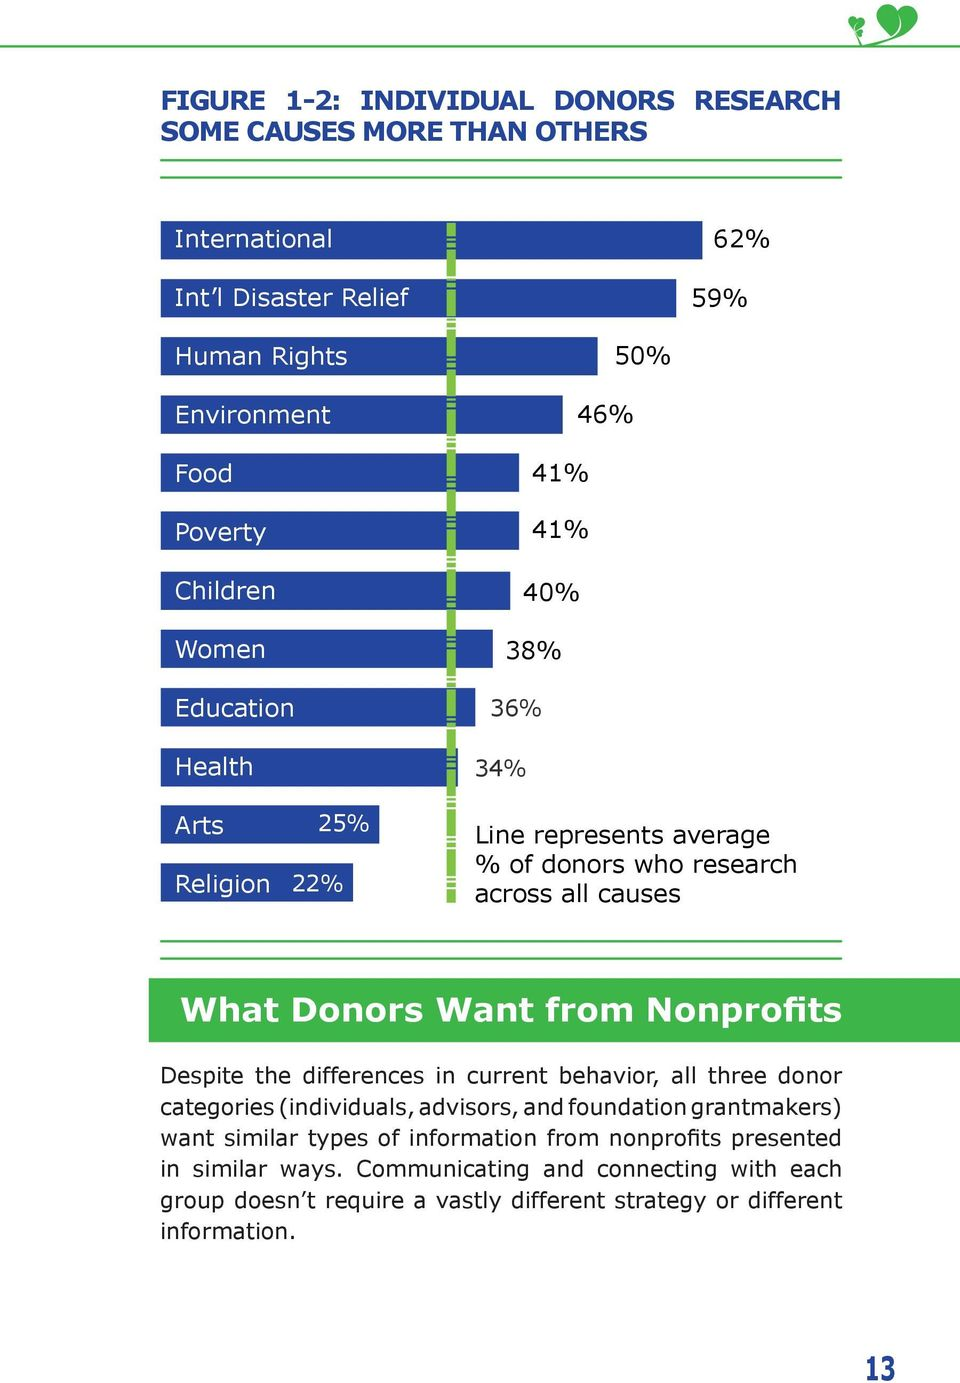 Nonprofits Despite the differences in current behavior, all three donor categories (individuals, advisors, and foundation grantmakers) want similar types of